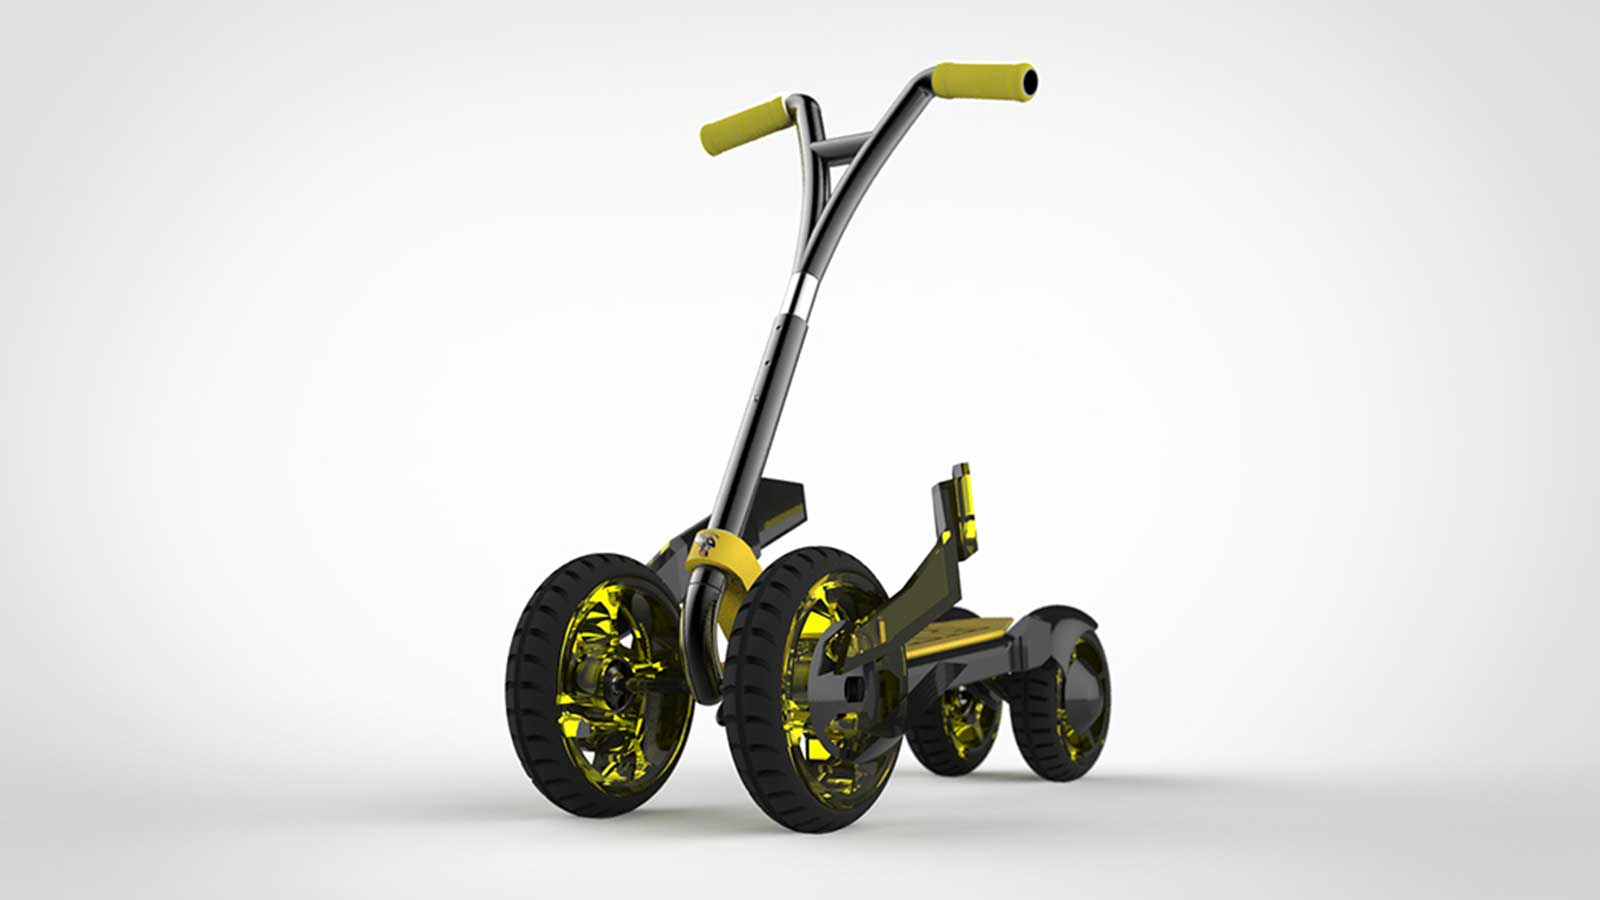 THE HORNET ATV SCOOTER